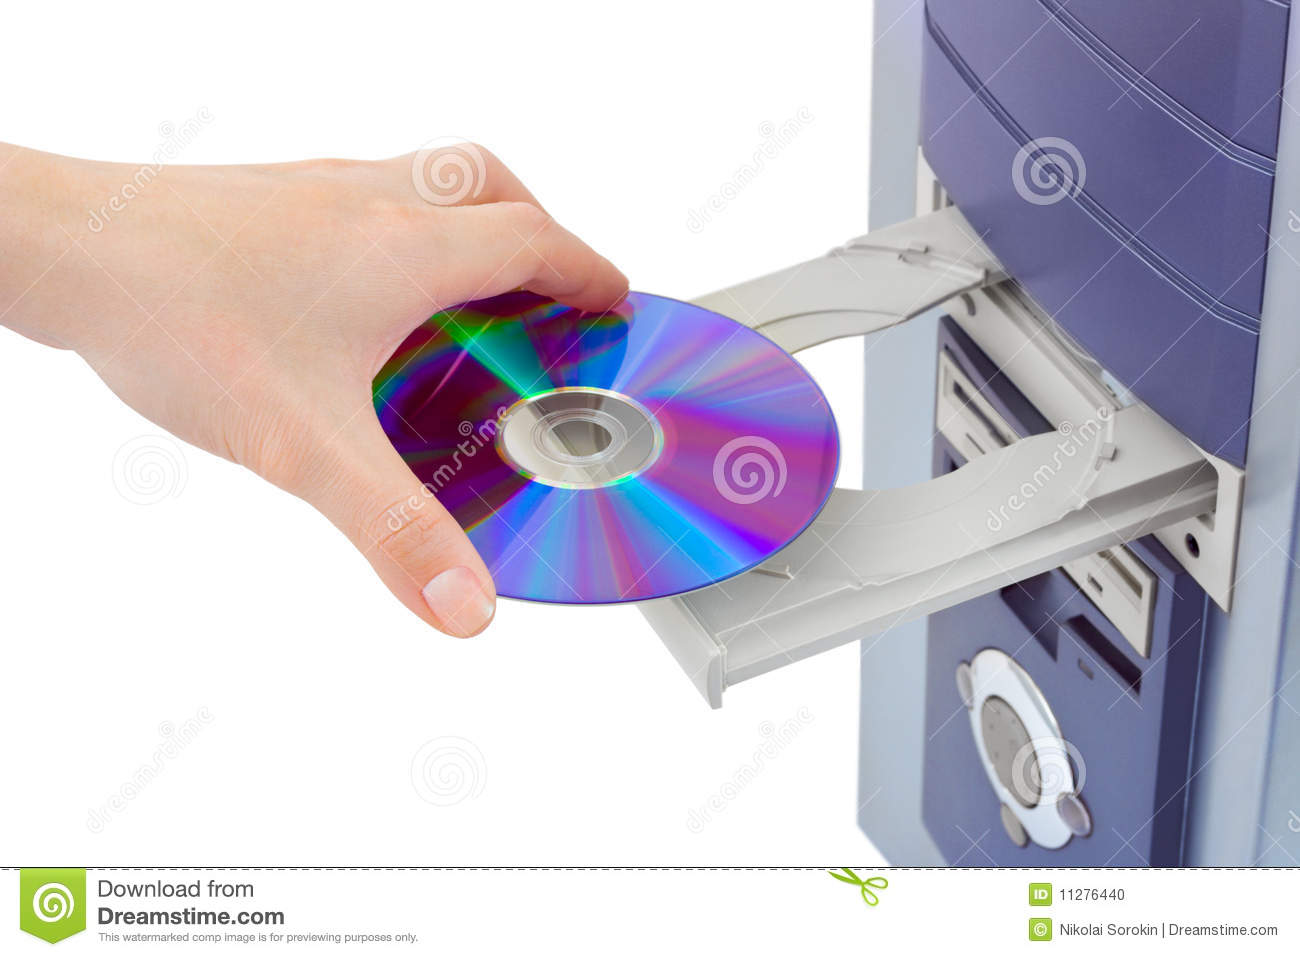 How to View Pictures on a Computer From a CD